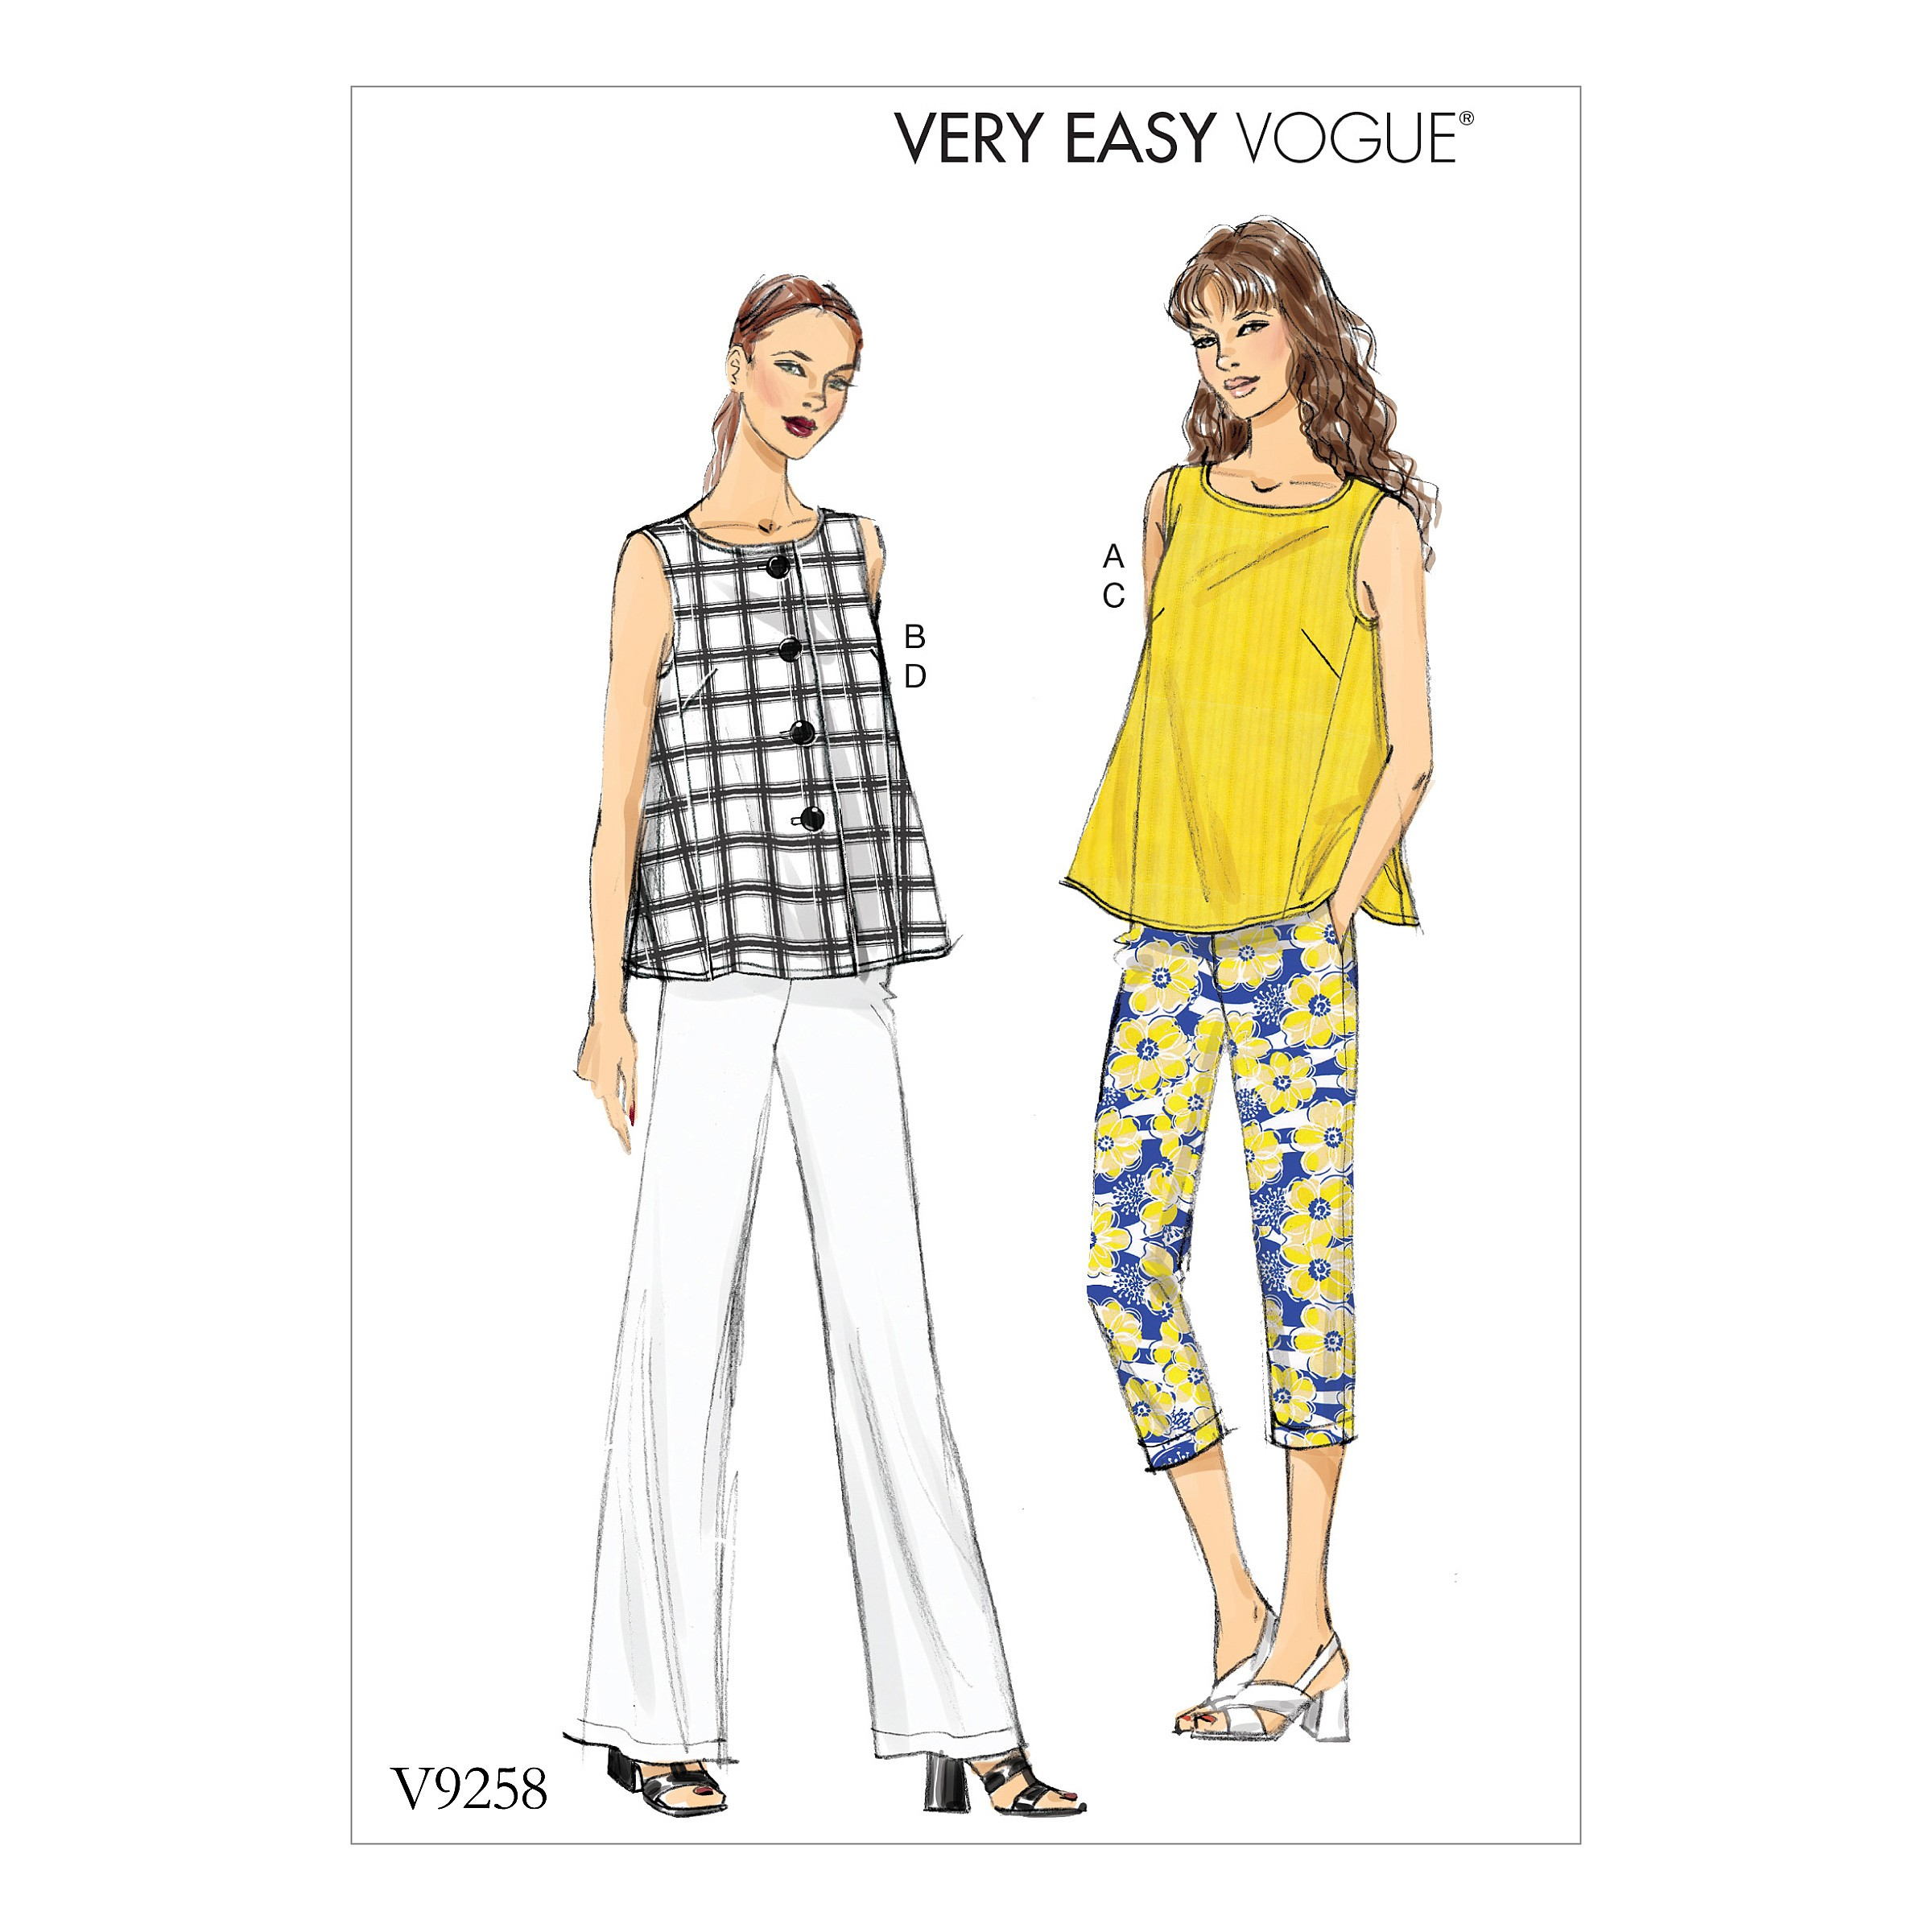 Vogue Sewing Pattern V9258 Women's Sleeveless Tops With Pull-On Pants